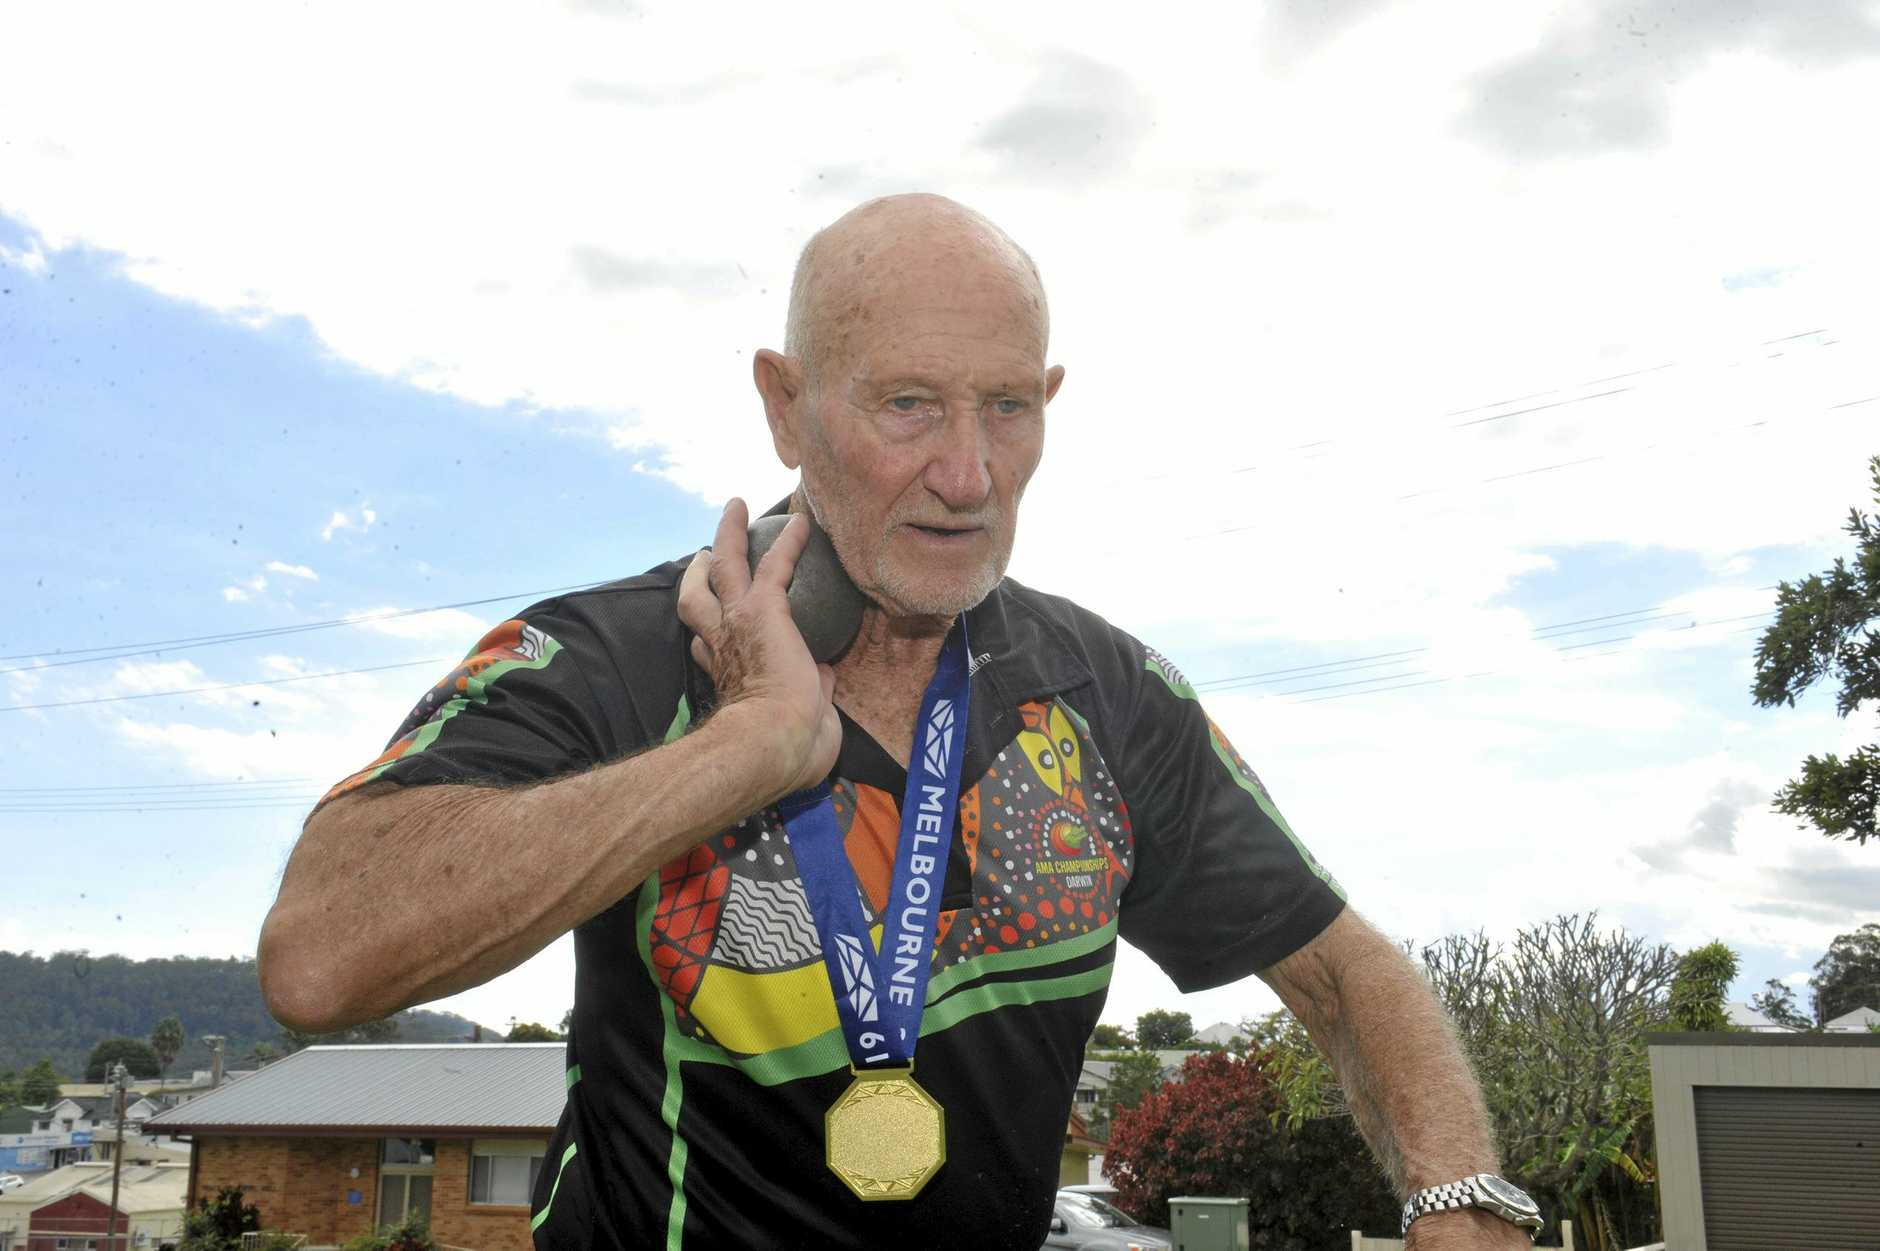 Masters athlete Tom Hancock claimed seven gold medals at the National Masters Games.